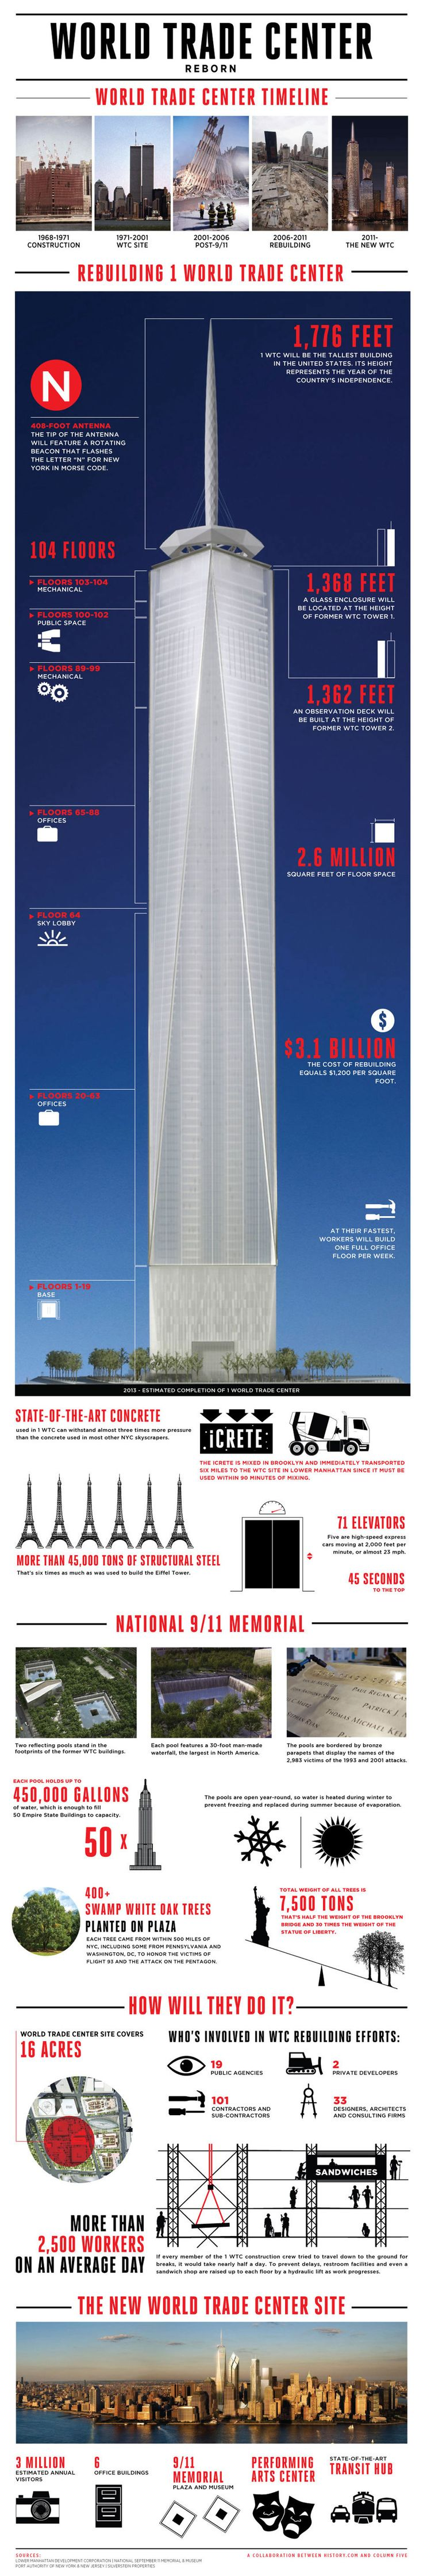 The new World Trade Center site will include the National 9/11 Memorial Plaza and Museum and 1 WTC, soon to be the tallest building in the United Stat